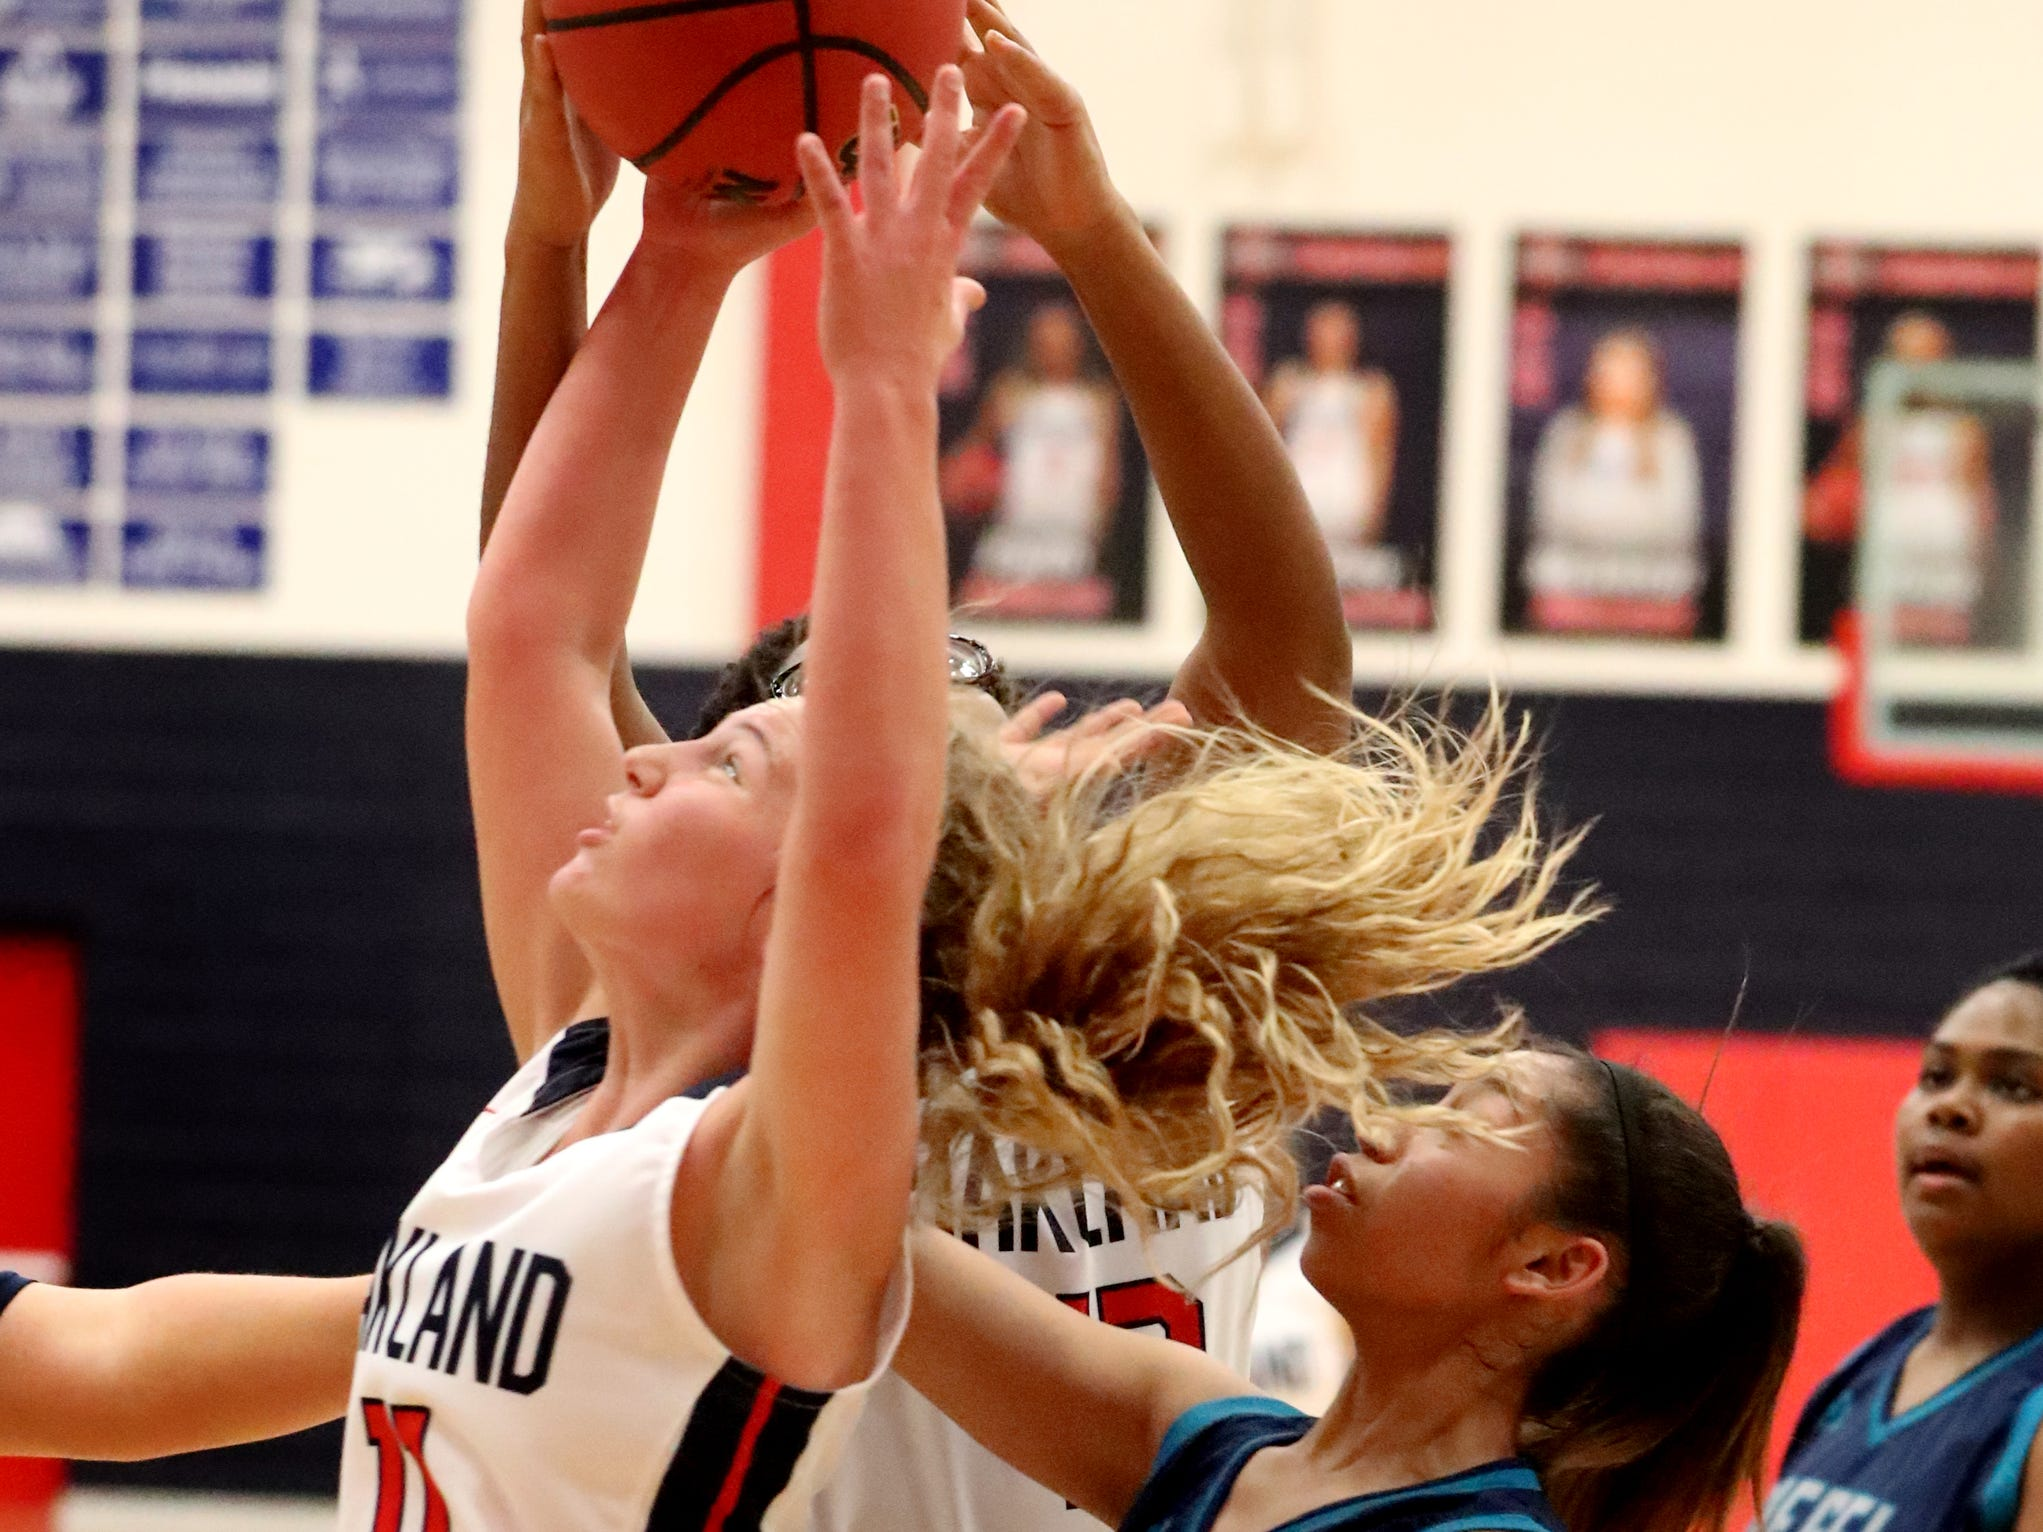 Oakland's Claira McGowan (11) goes after a rebound during the game against Siegel at Oakland on Tuesday, Dec.. 4, 2018.